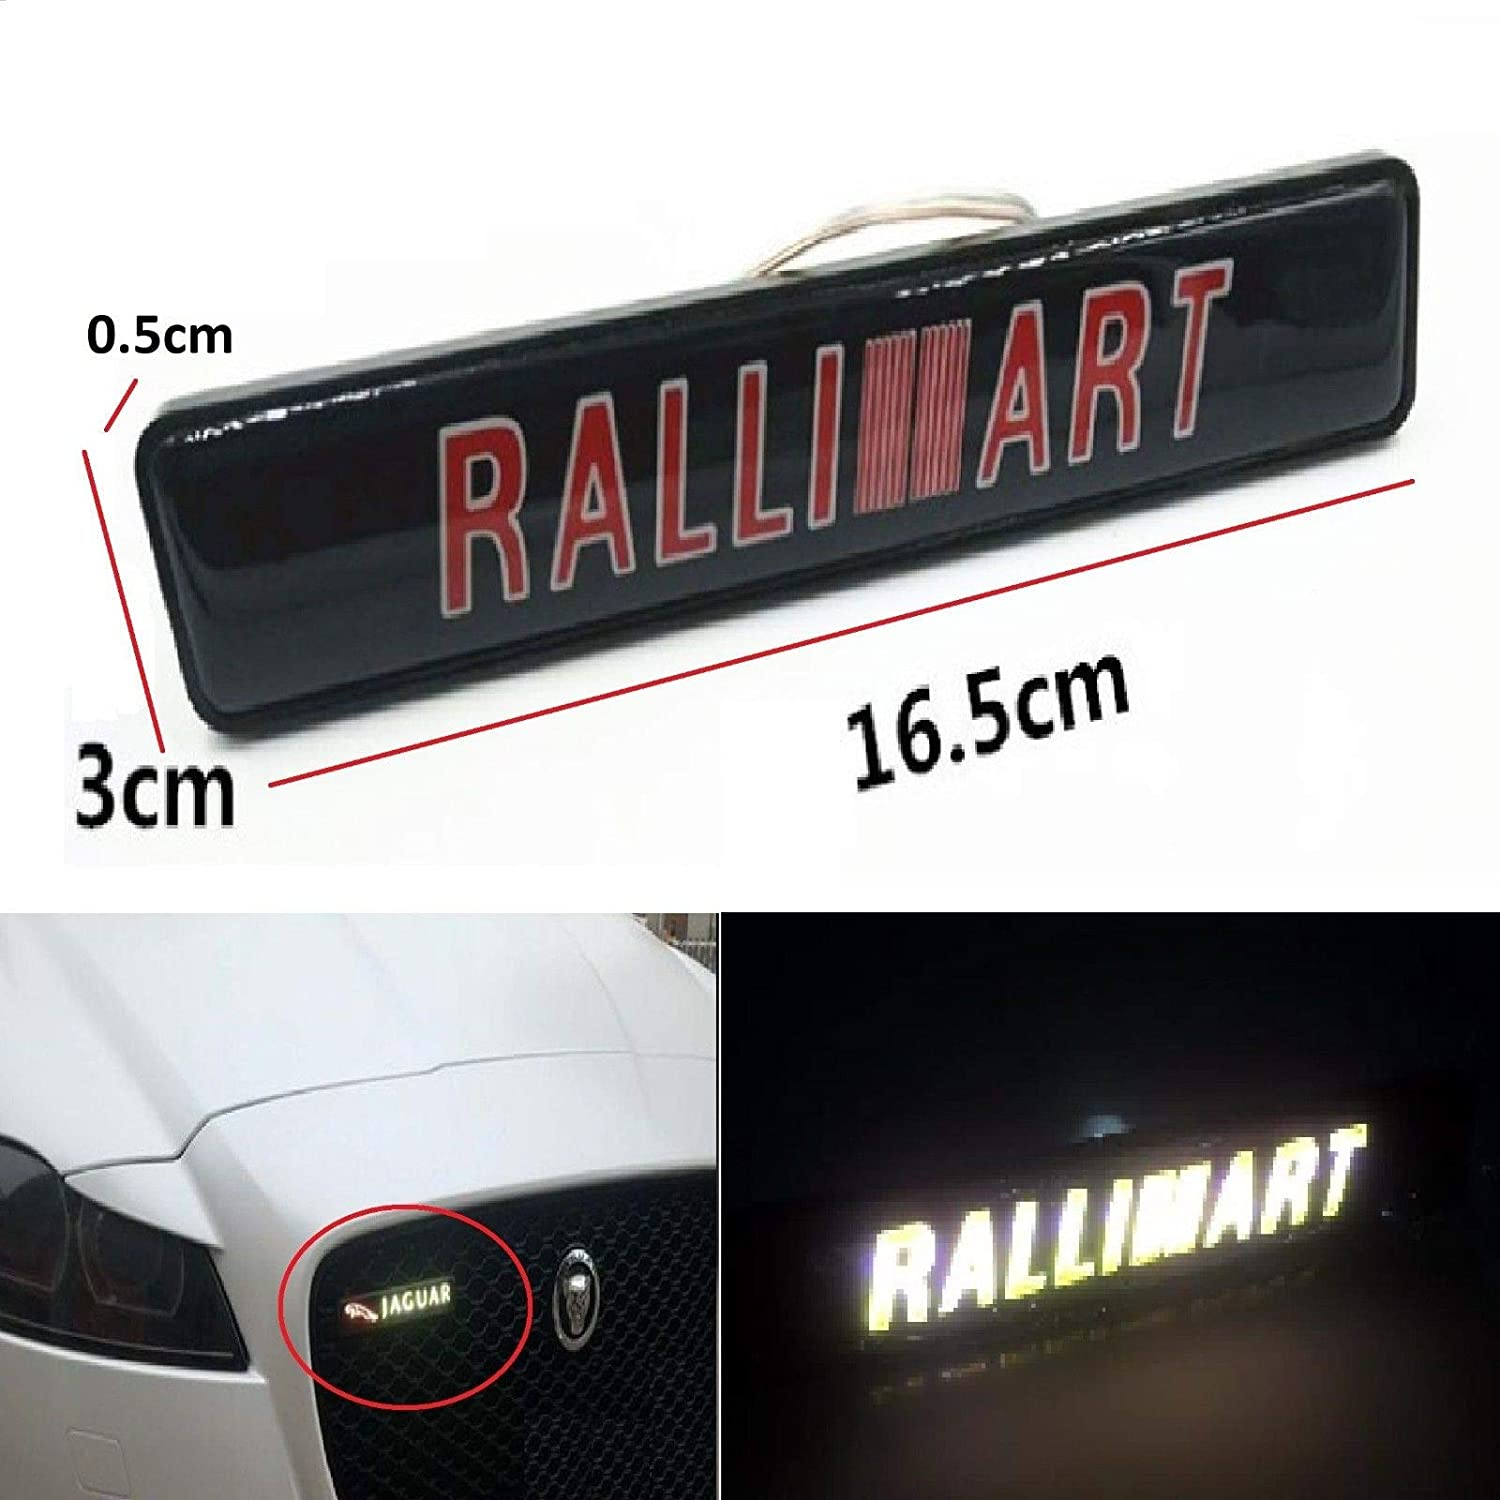 Gooogo RA-LED Outlander Lancer Evolution EVO Ralliart LED Light Car Front Grille Badge Illuminated Decal